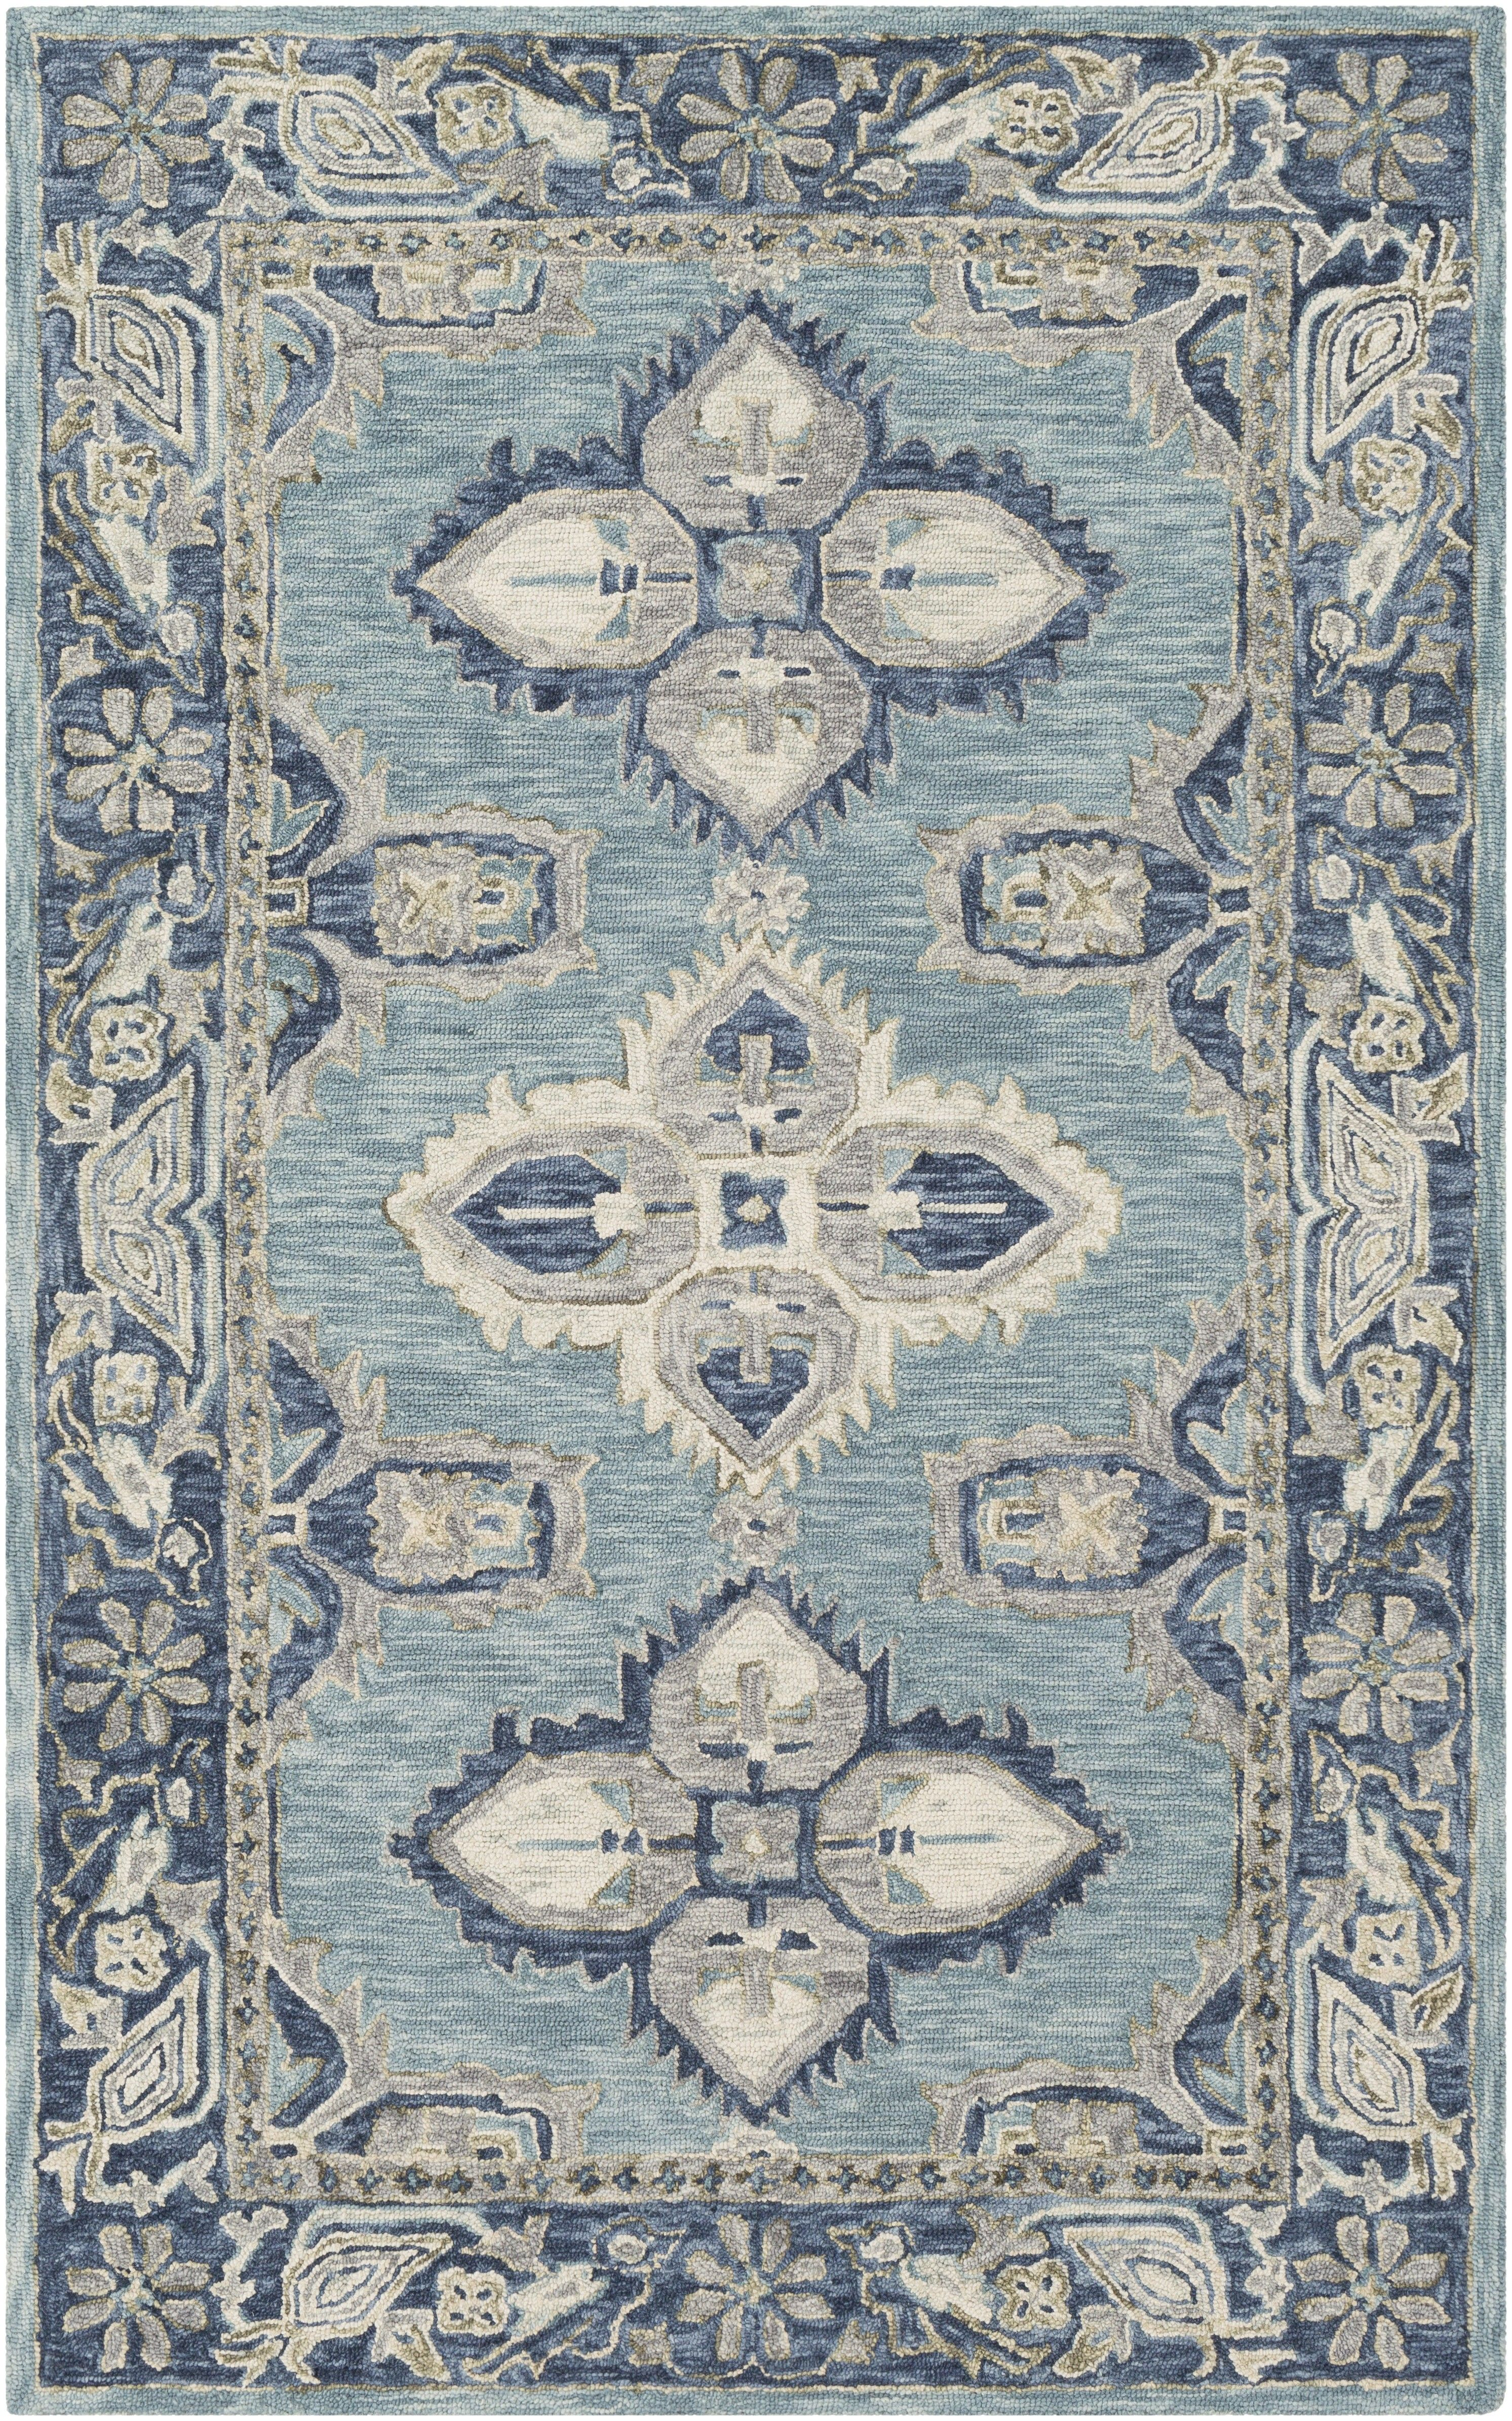 Floral Designs In Navy And Cream Drape Across An Ocean Blue Background For A Rug That Is Equal Par Wool Area Rugs Bohemian Area Rugs Blue And Cream Living Room